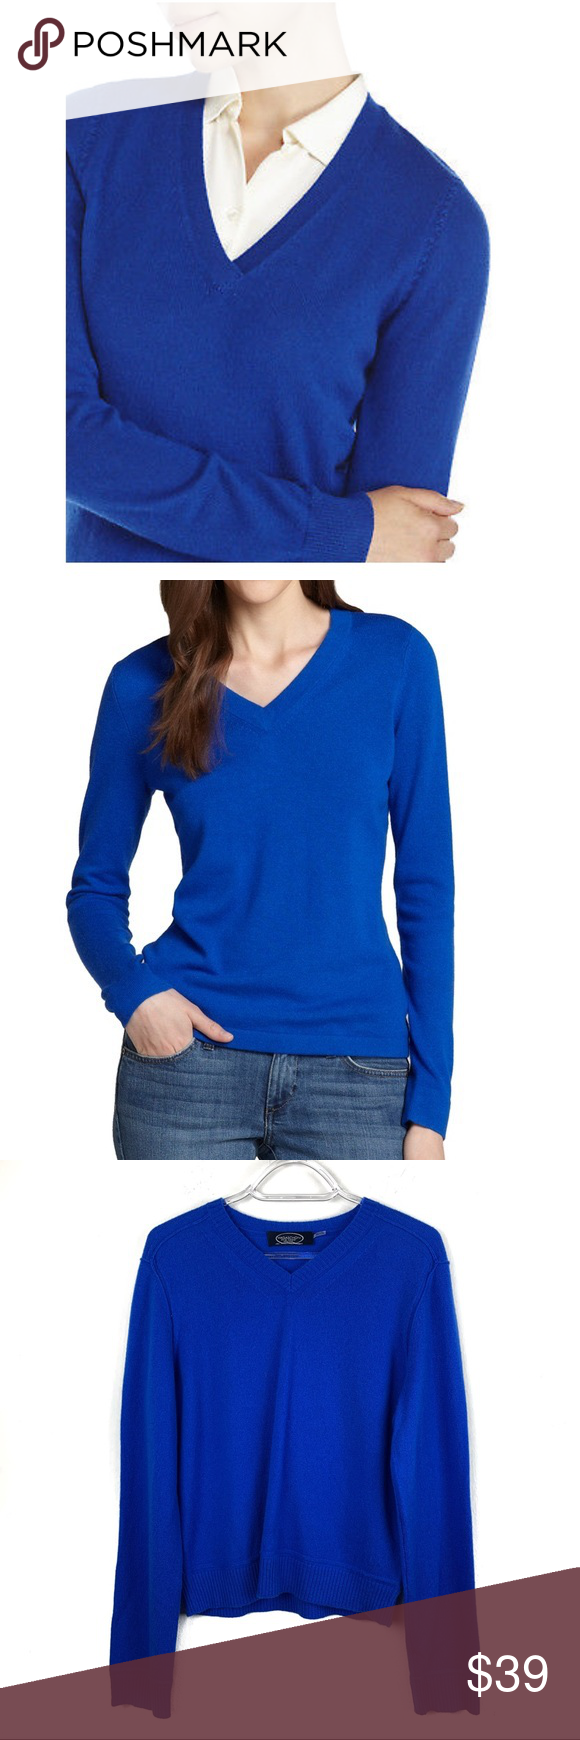 8c62aab2067cbb Magaschoni Cashmere Royal Blue Sweater L EUC - no piling. Perfect sweater